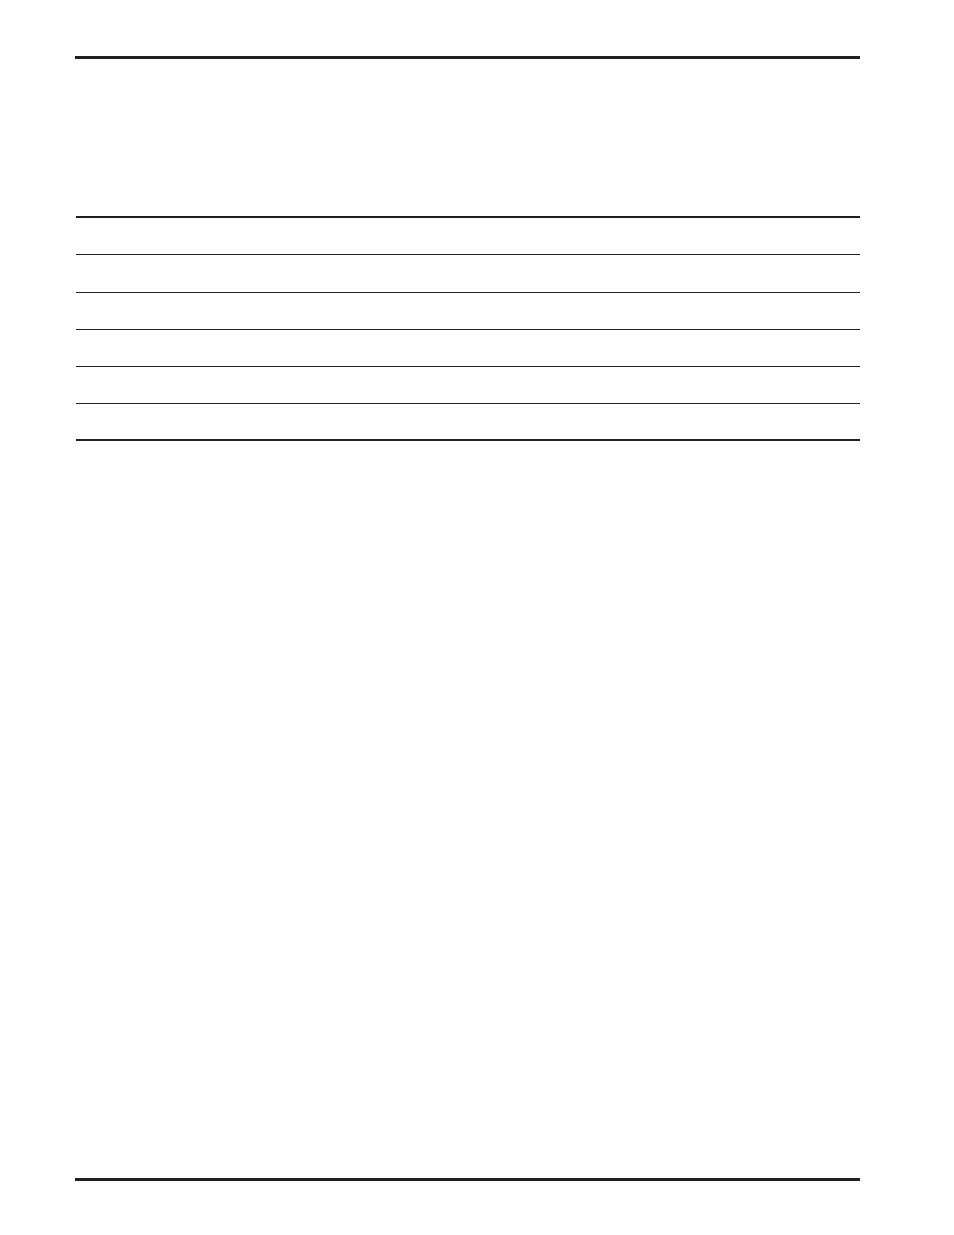 Troubleshooting Storage Parts Ordering Kohler Command Pro Ch980 Engine Electrical Wiring User Manual Page 16 20